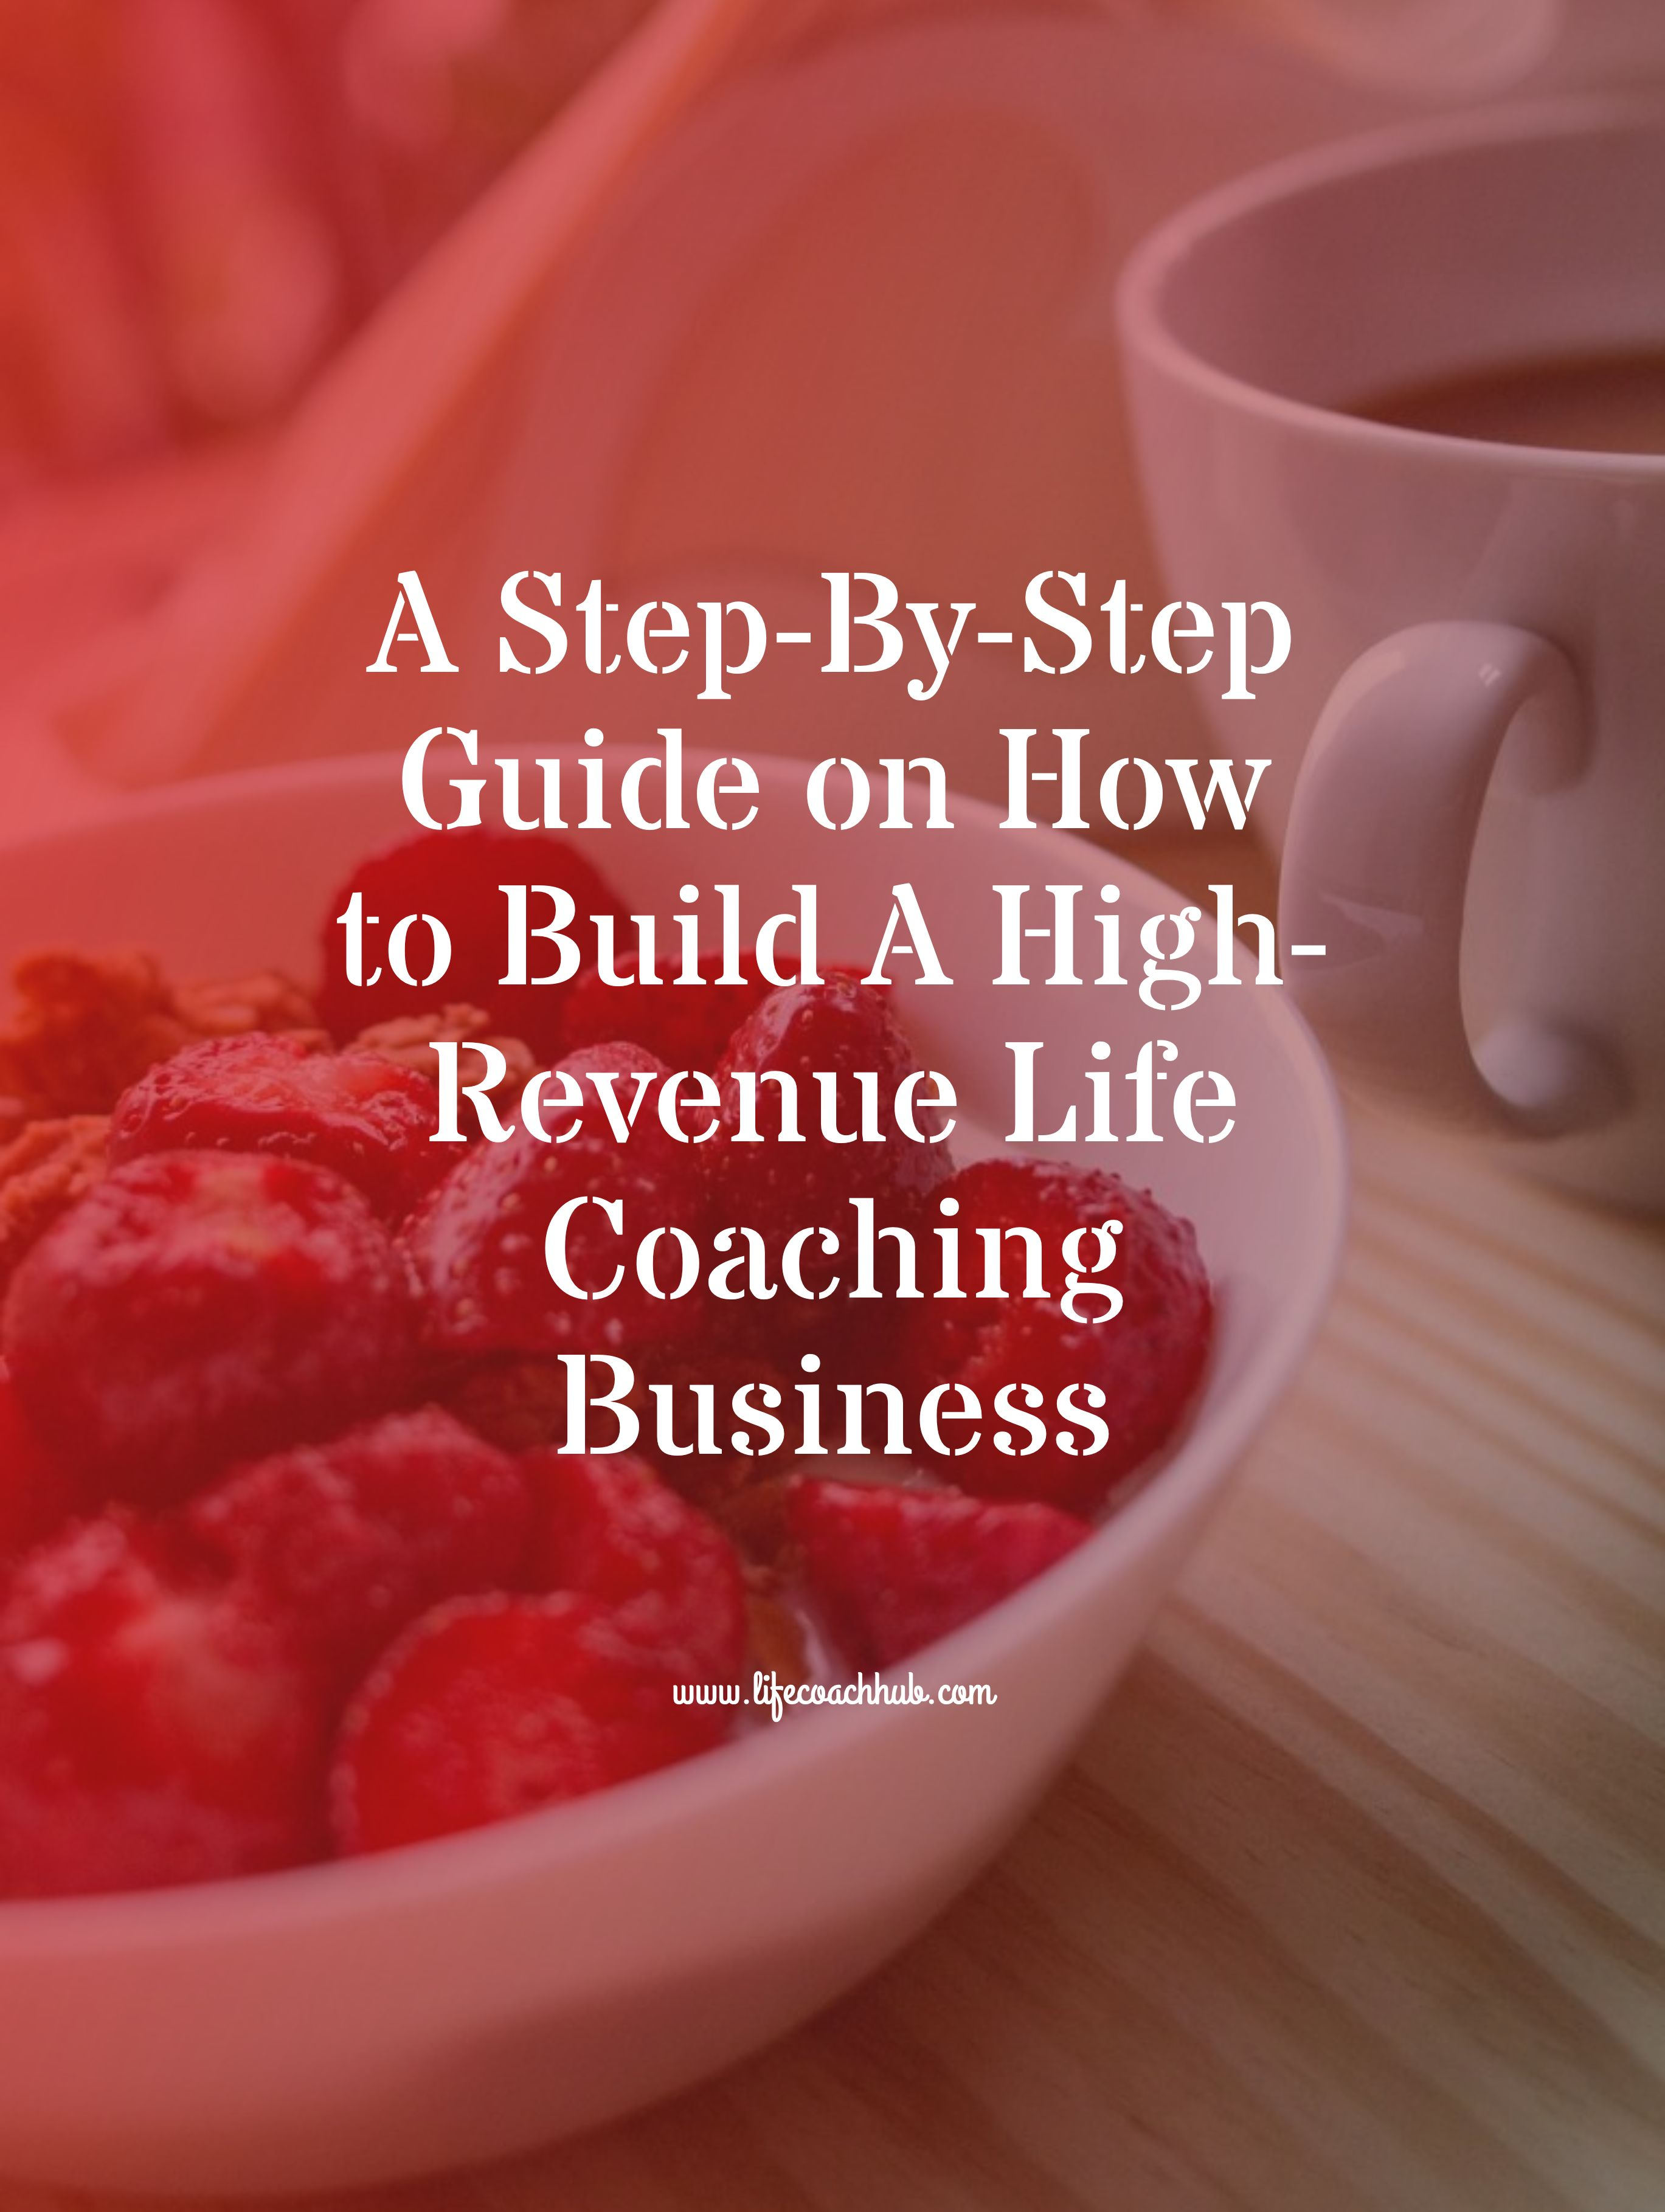 How to build a high revenue life coaching business